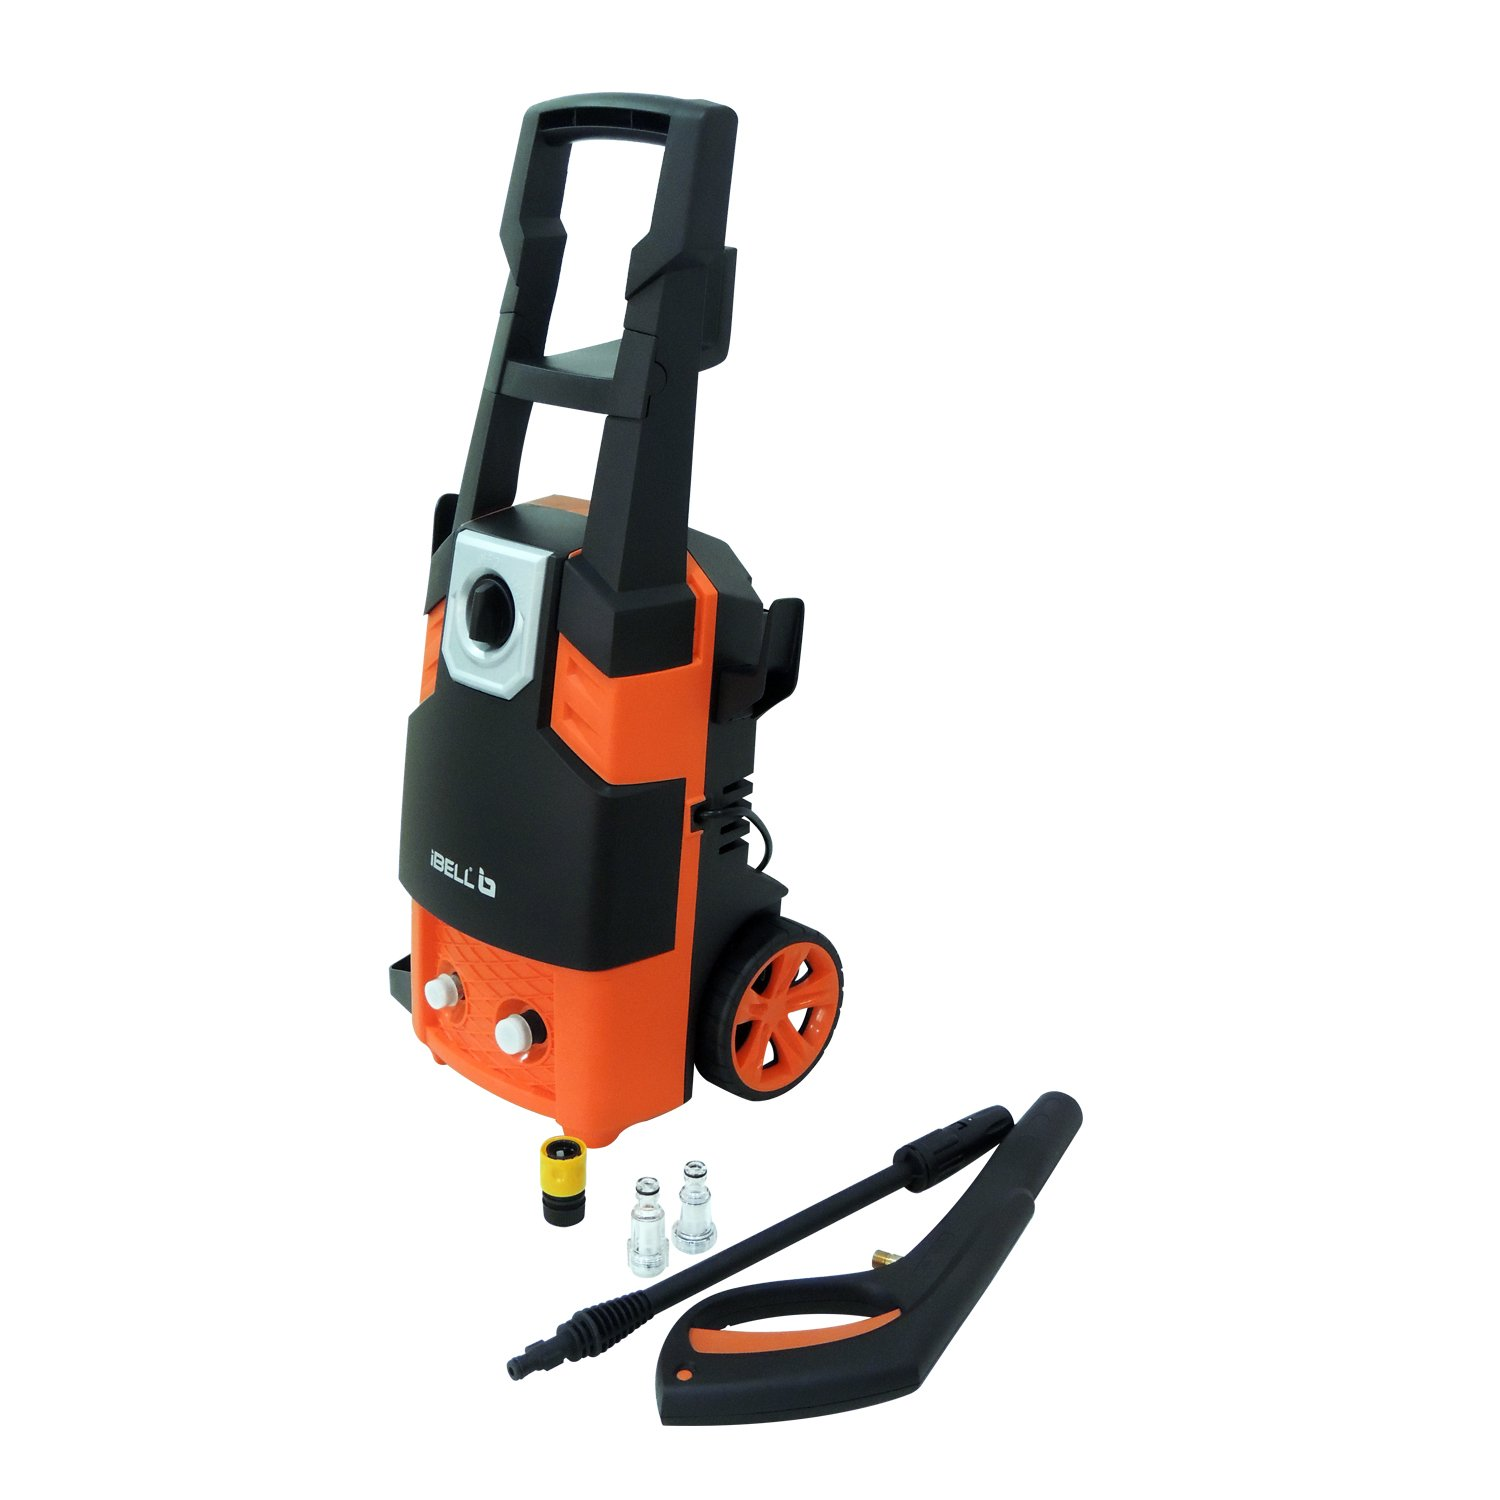 iBELL 1800-Watt Universal Motor Home and Car Pressure Washer (Black & Orange)